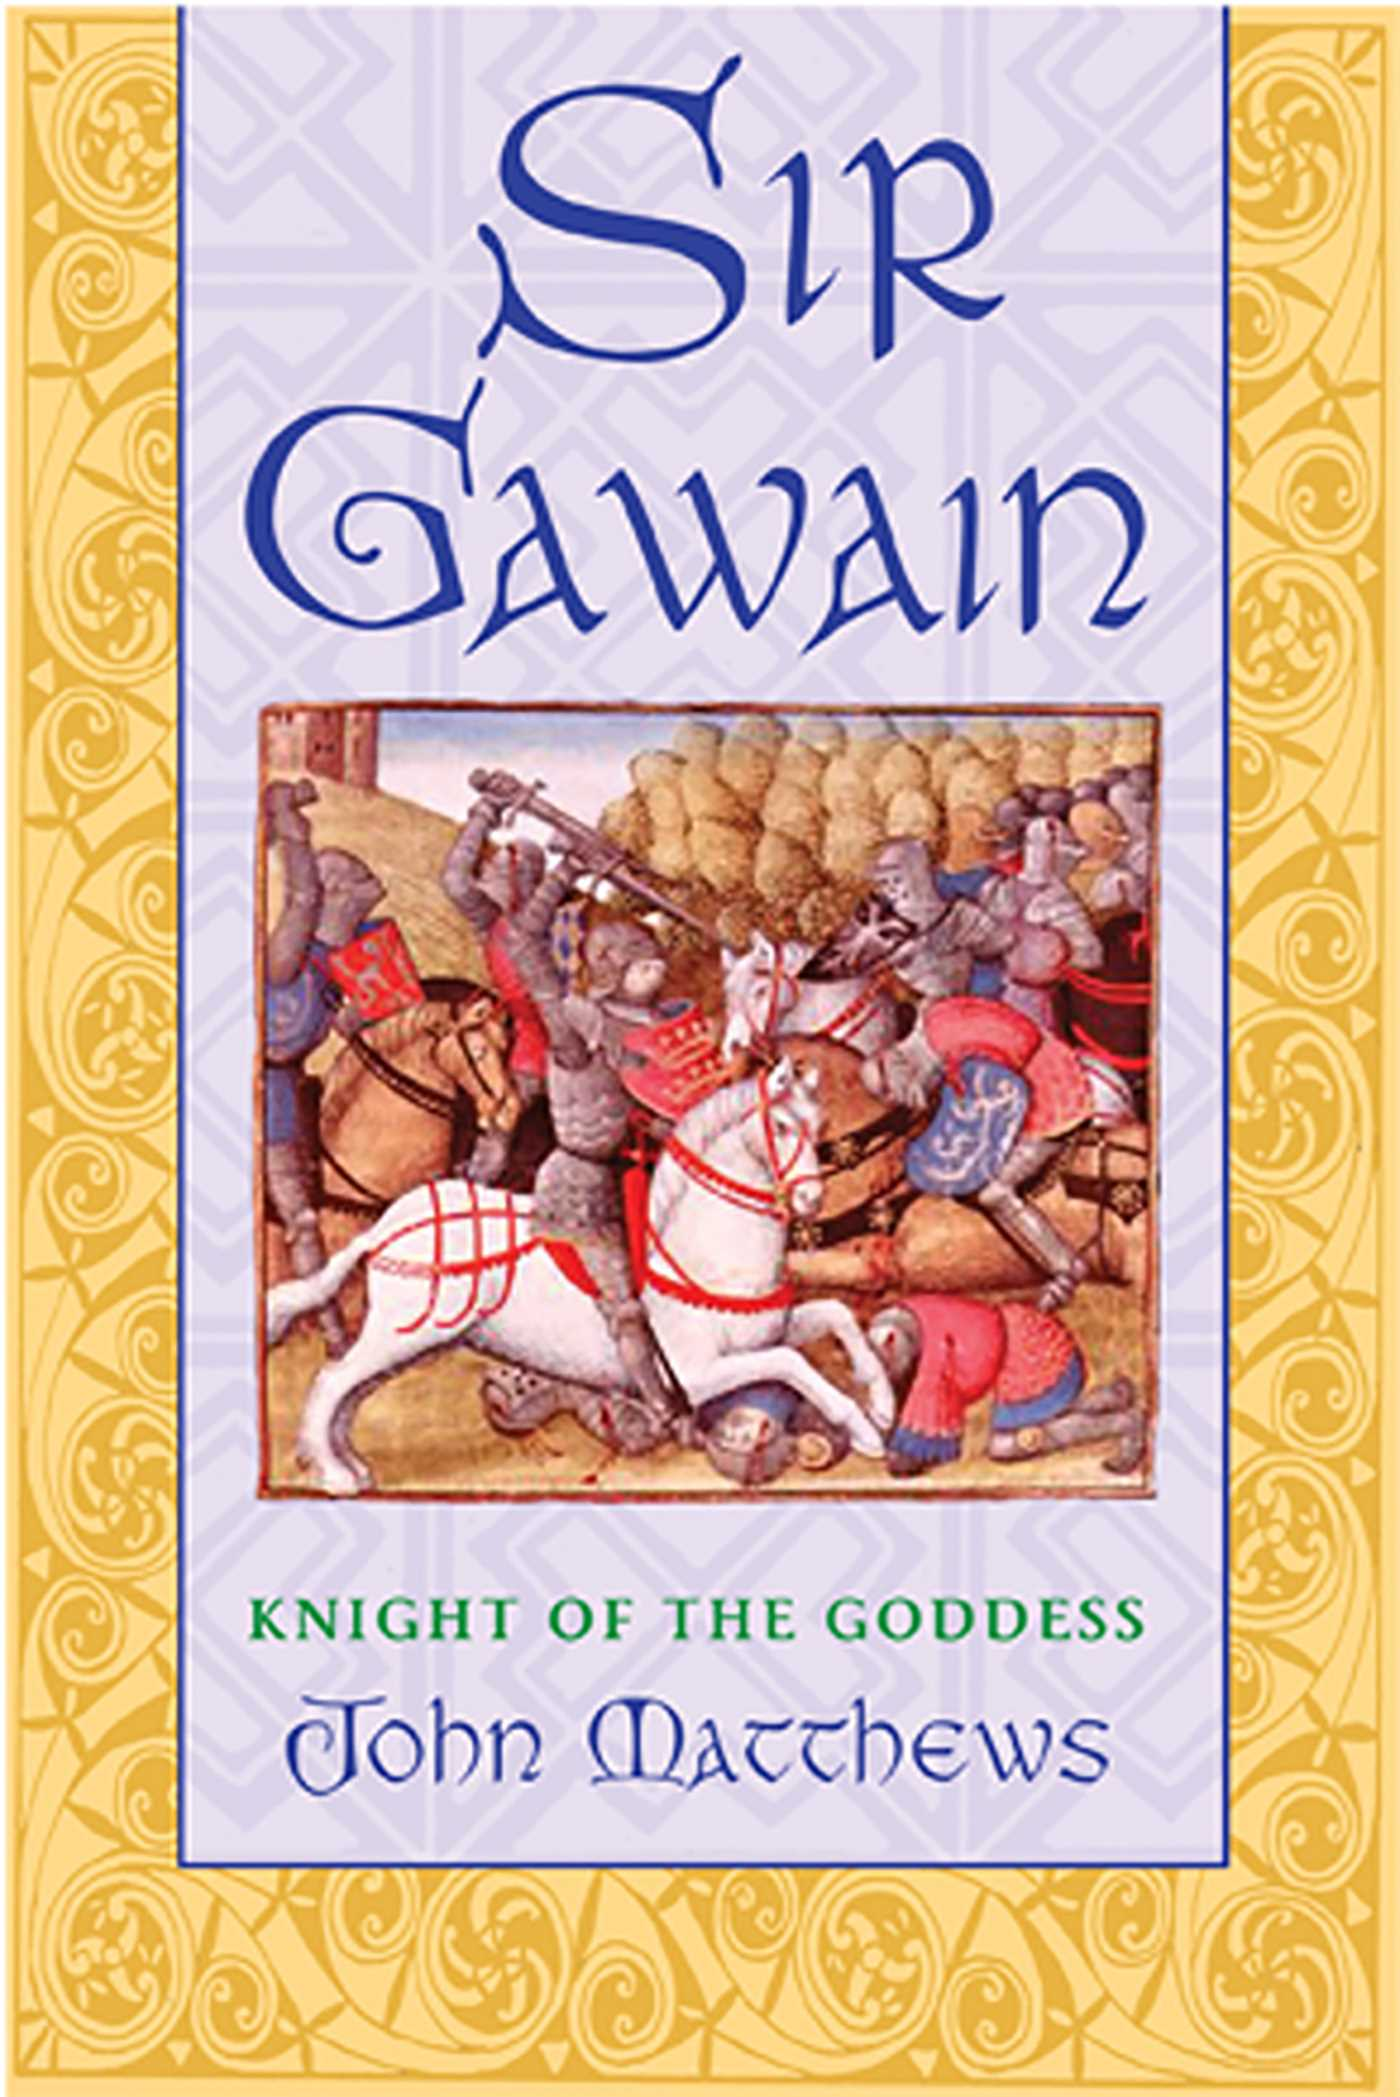 sir gawain the role of women Women's role in medieval literature pure and innocent women to be their doting brides sir gawain's women's role in medieval literature the role of the.